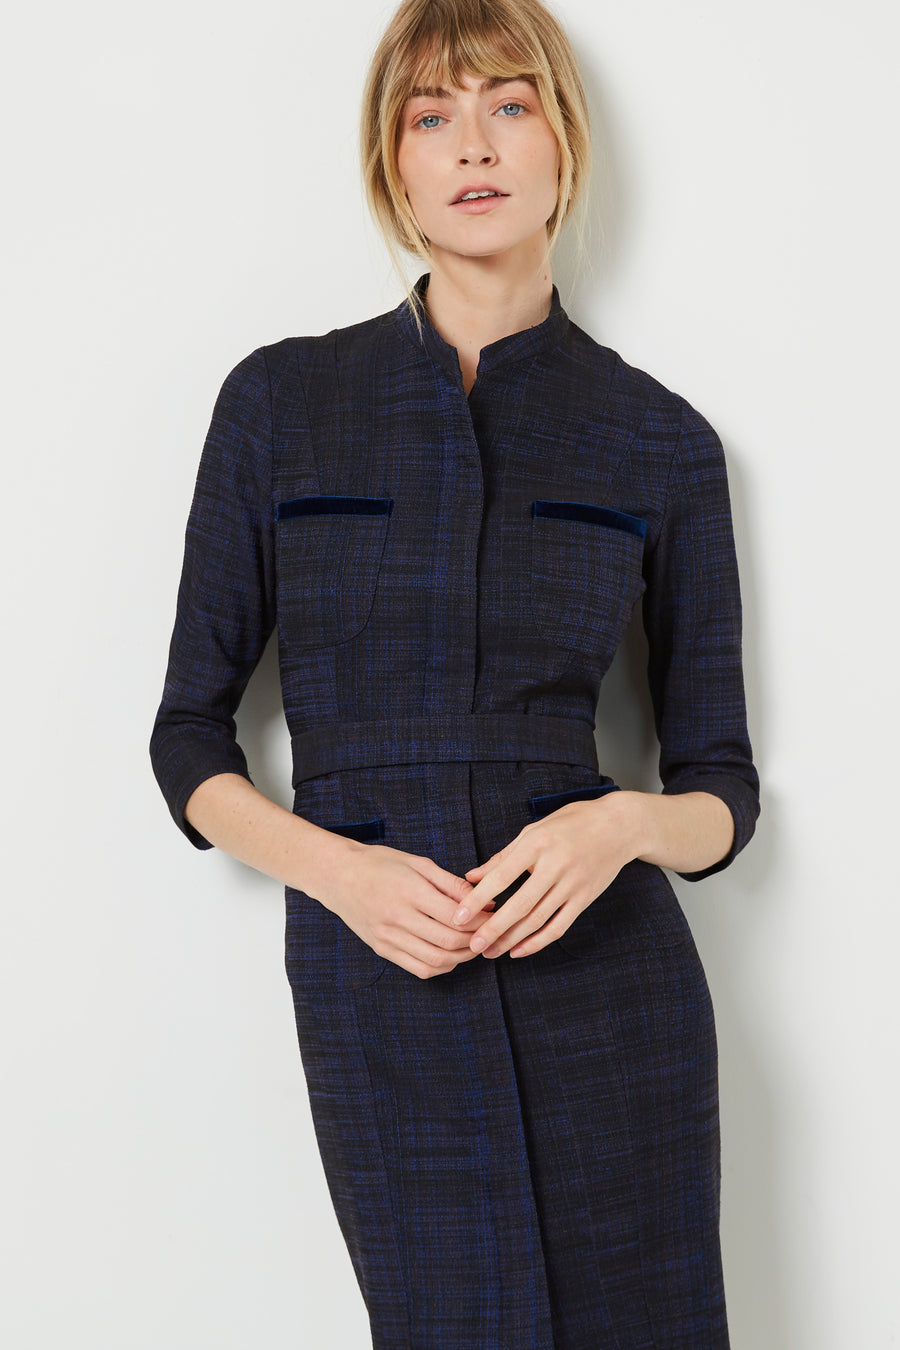 Curzon Blue Crosshatch Jacquard Dress